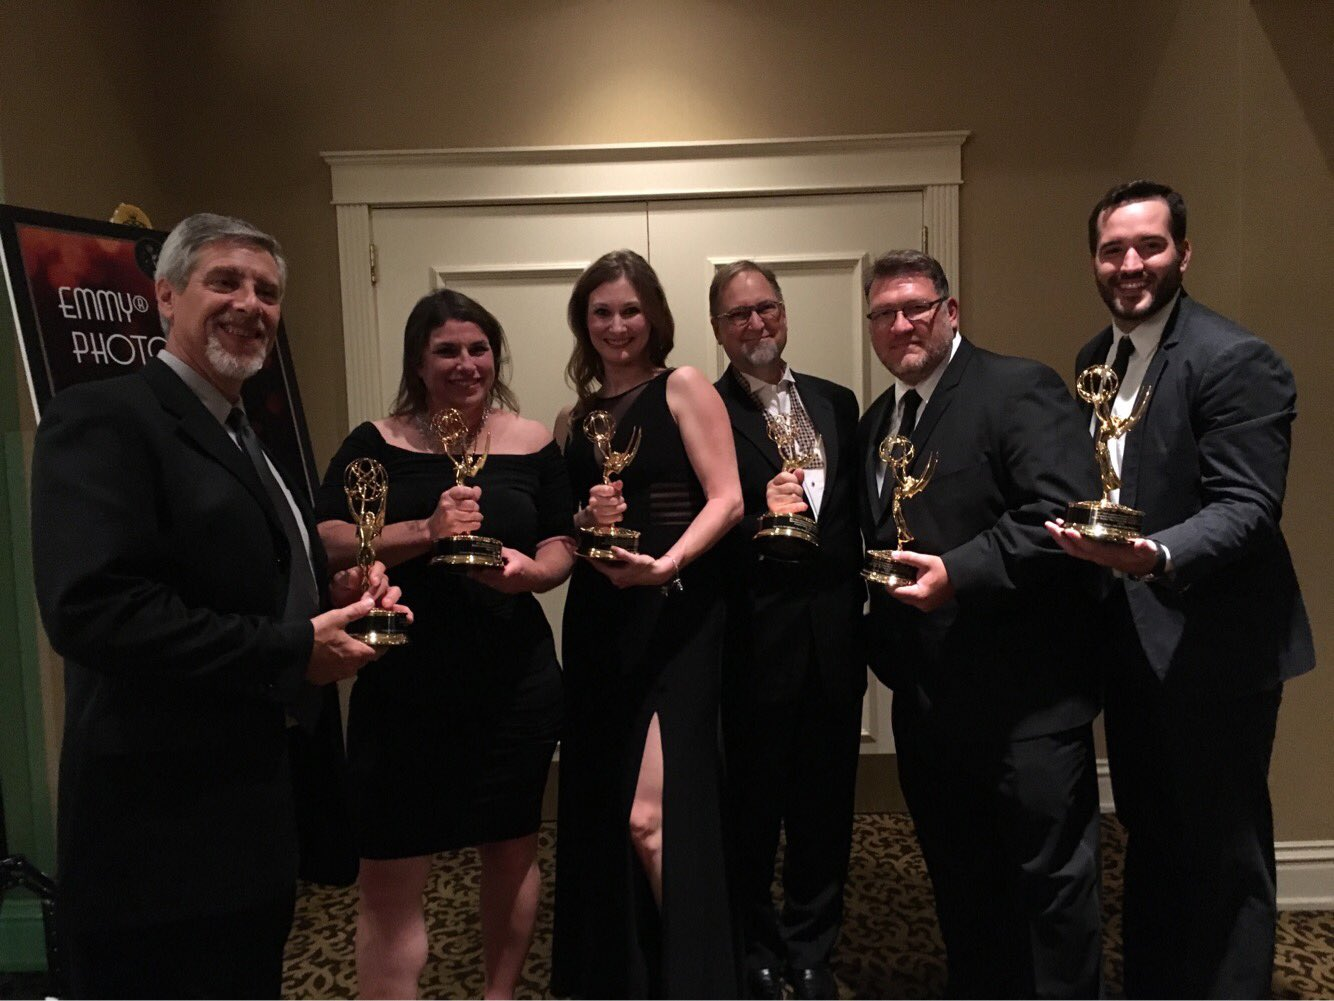 Part of the KCPT gang with their golden statuettes. We're proud of the work we're doing in and for the community.